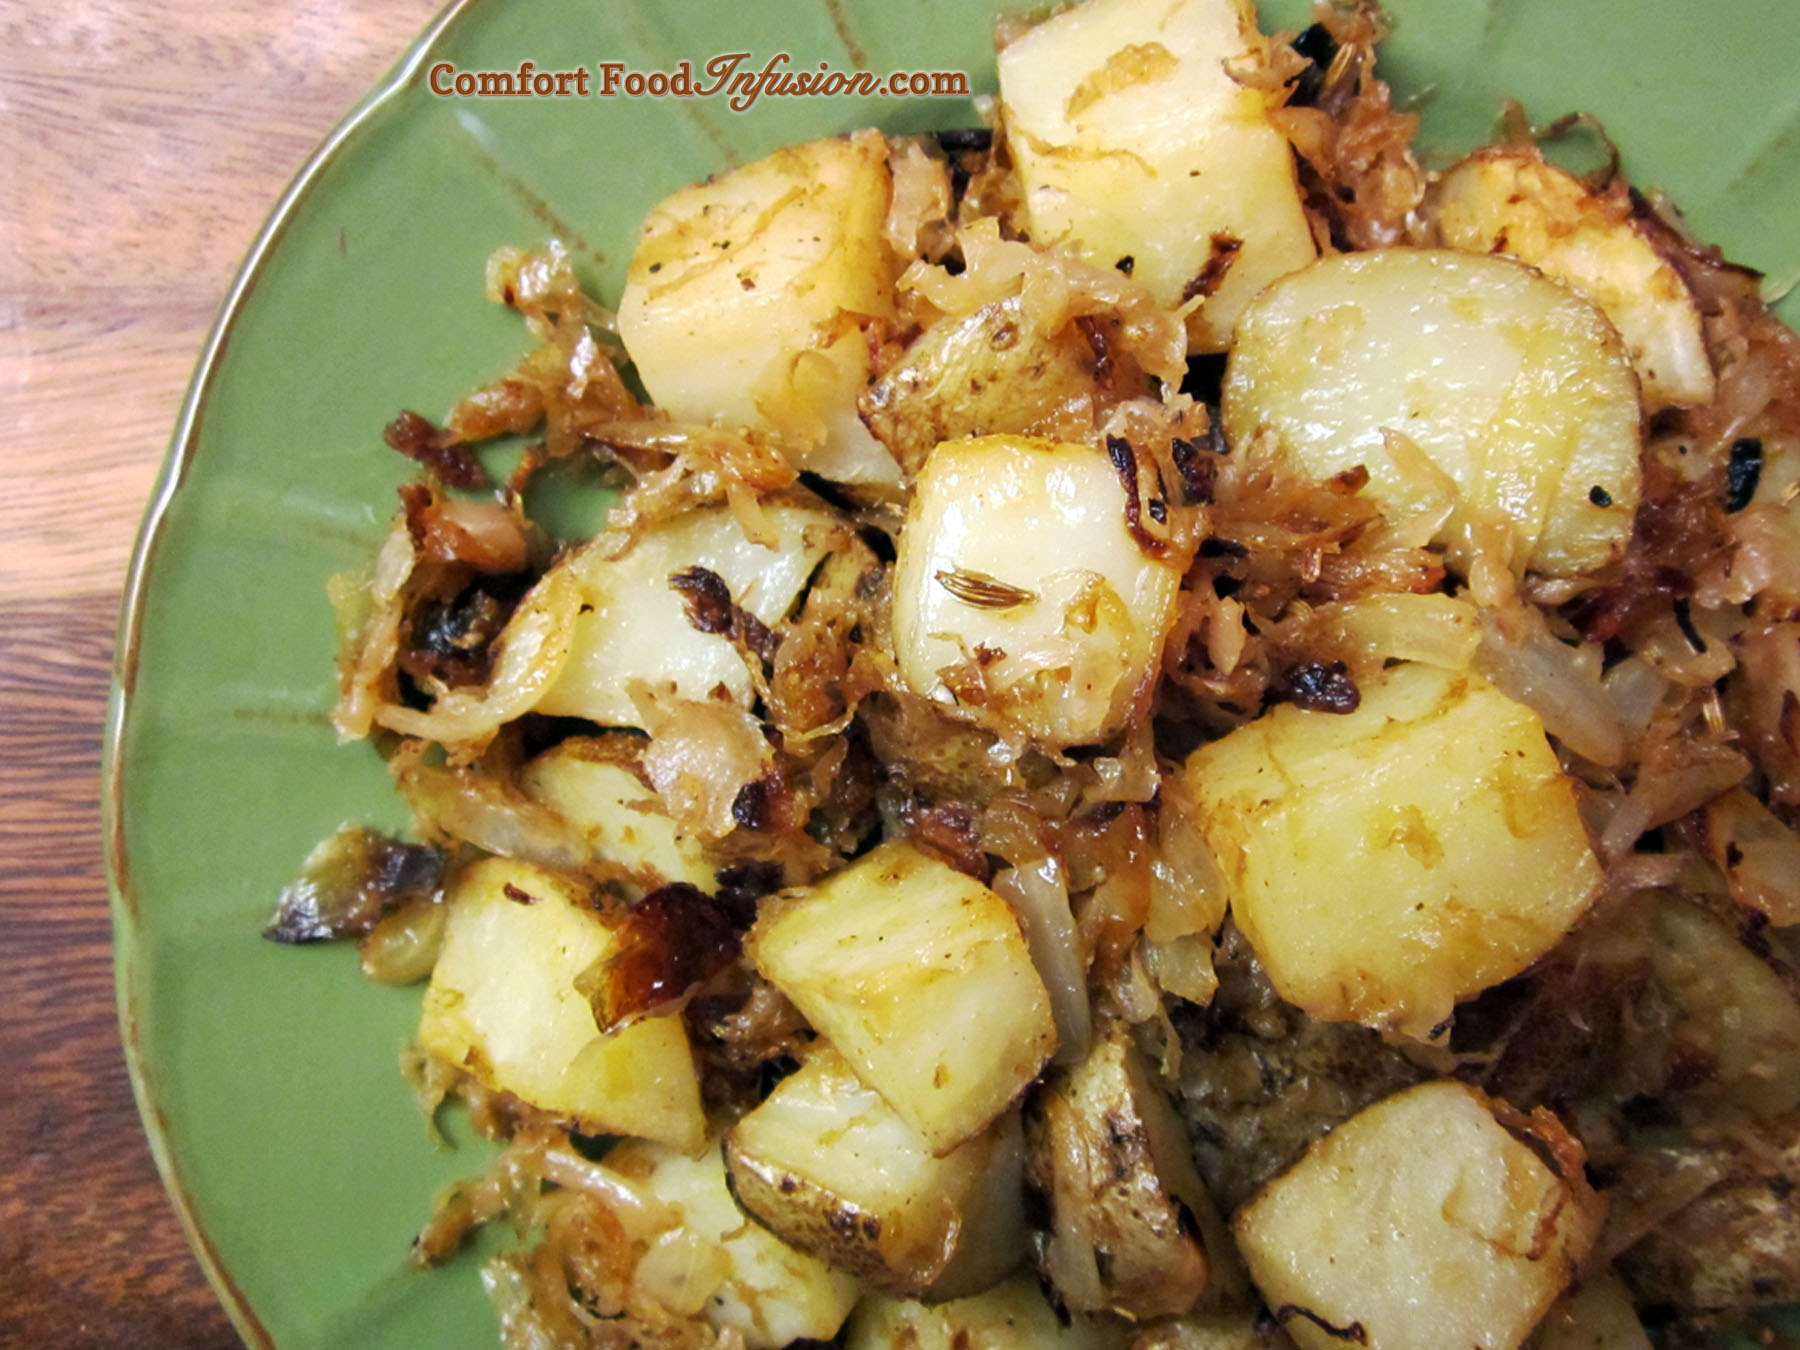 Roasted Potatoes with Sauerkraut